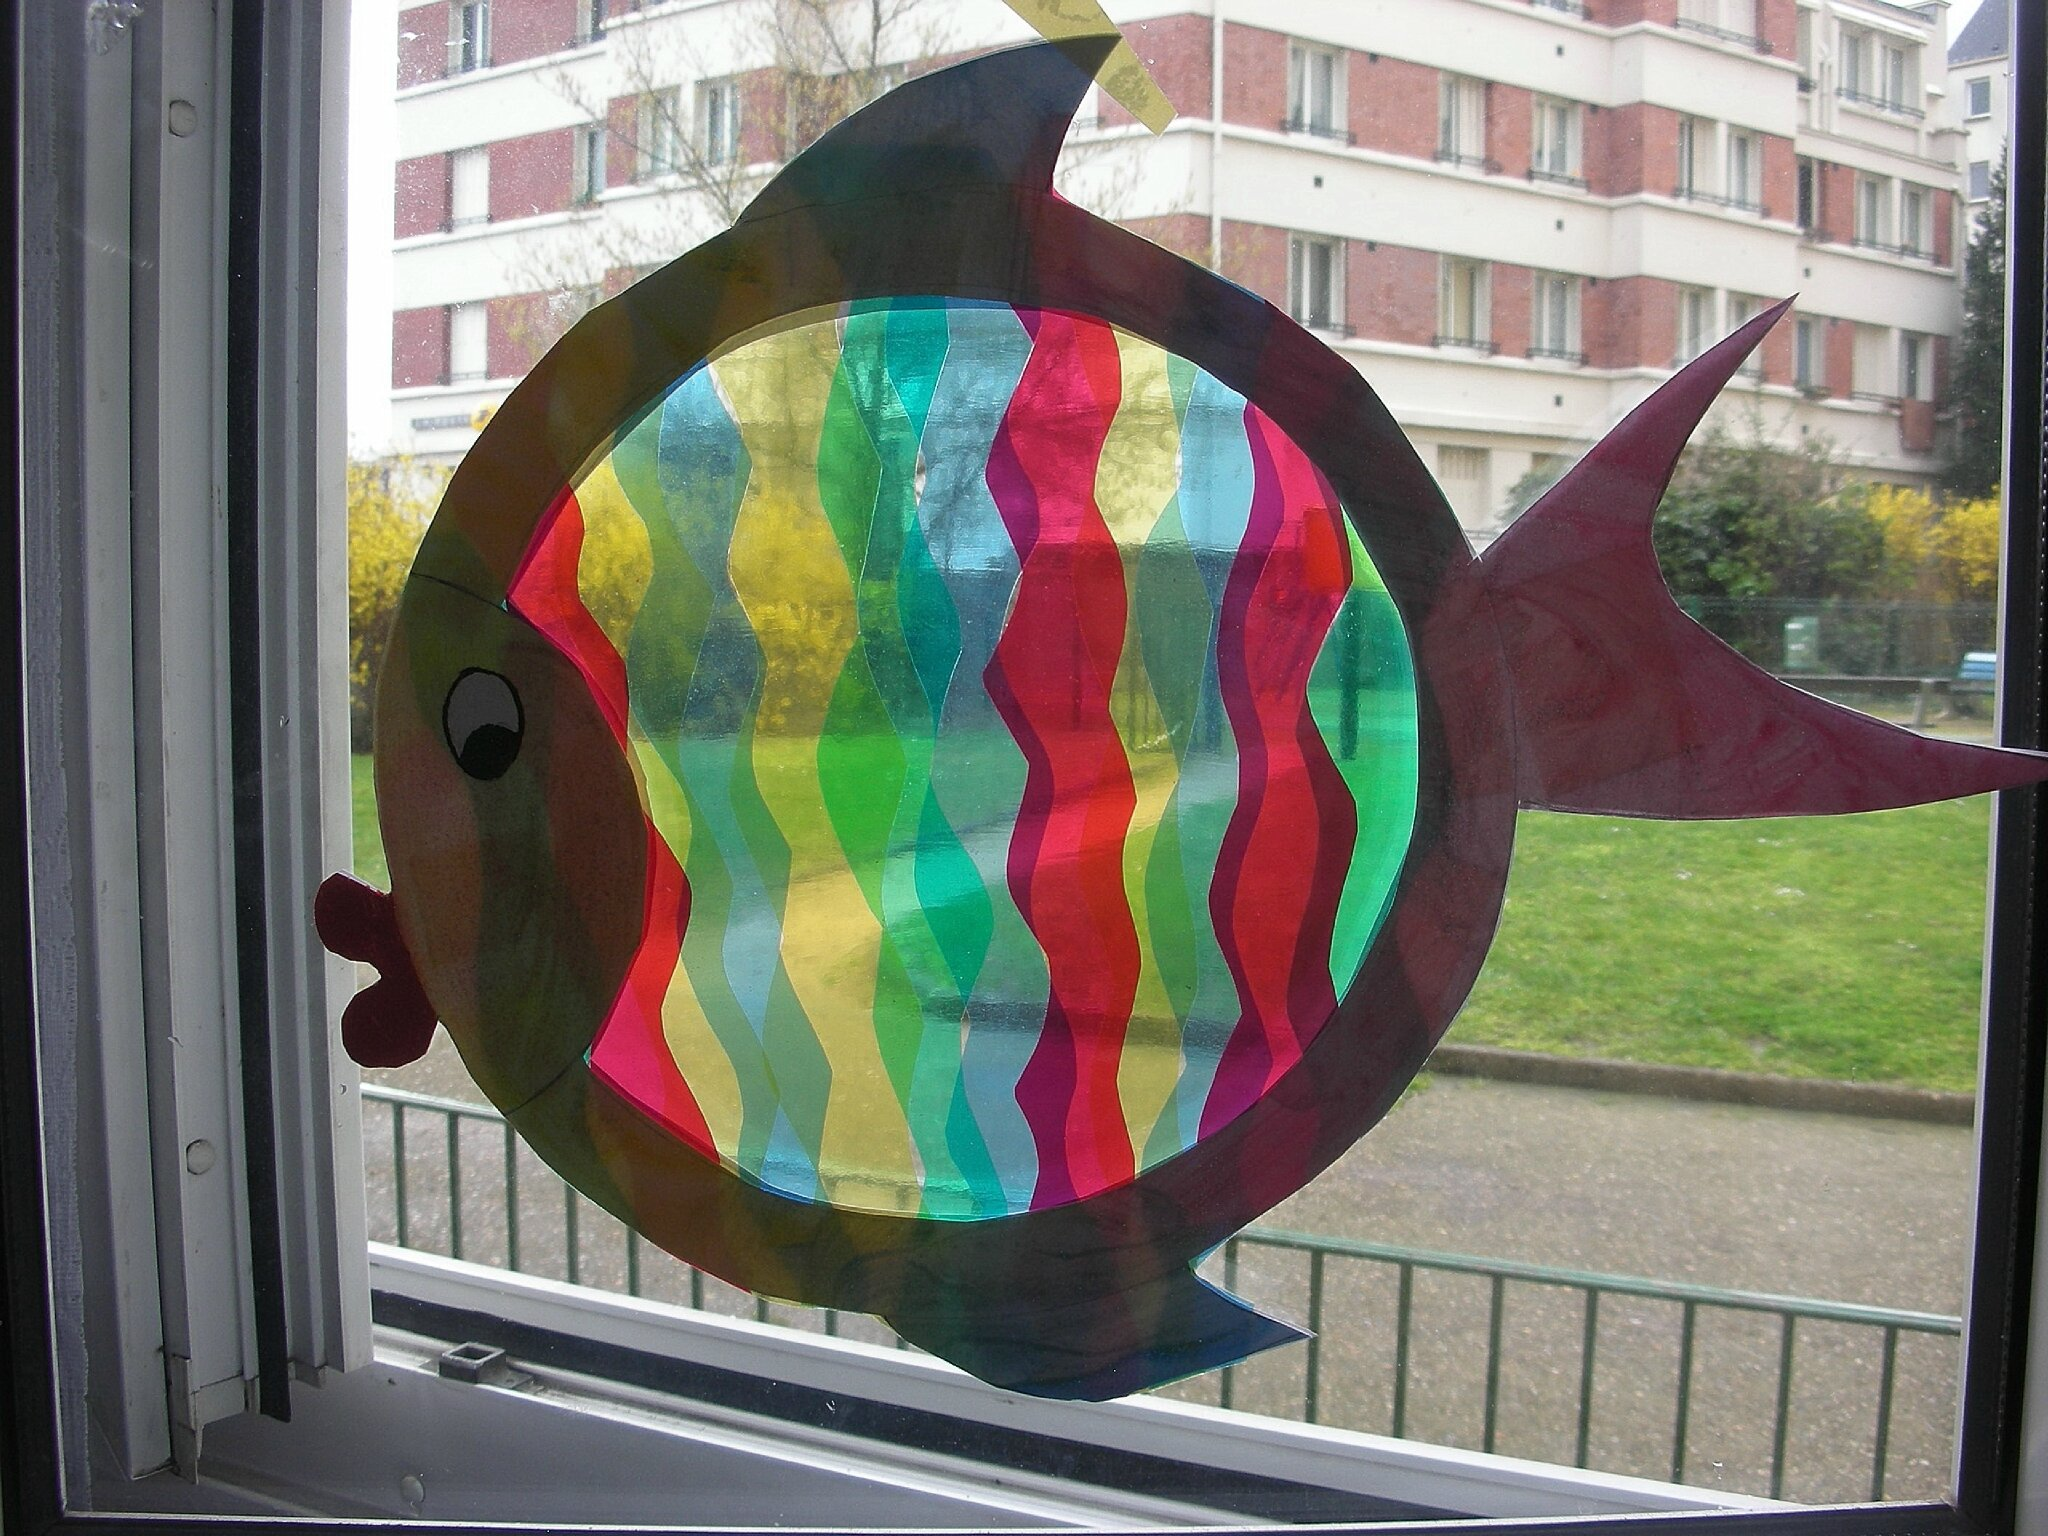 Poisson arc en ciel d coration pour les fen tres la for Decoration fenetre clown